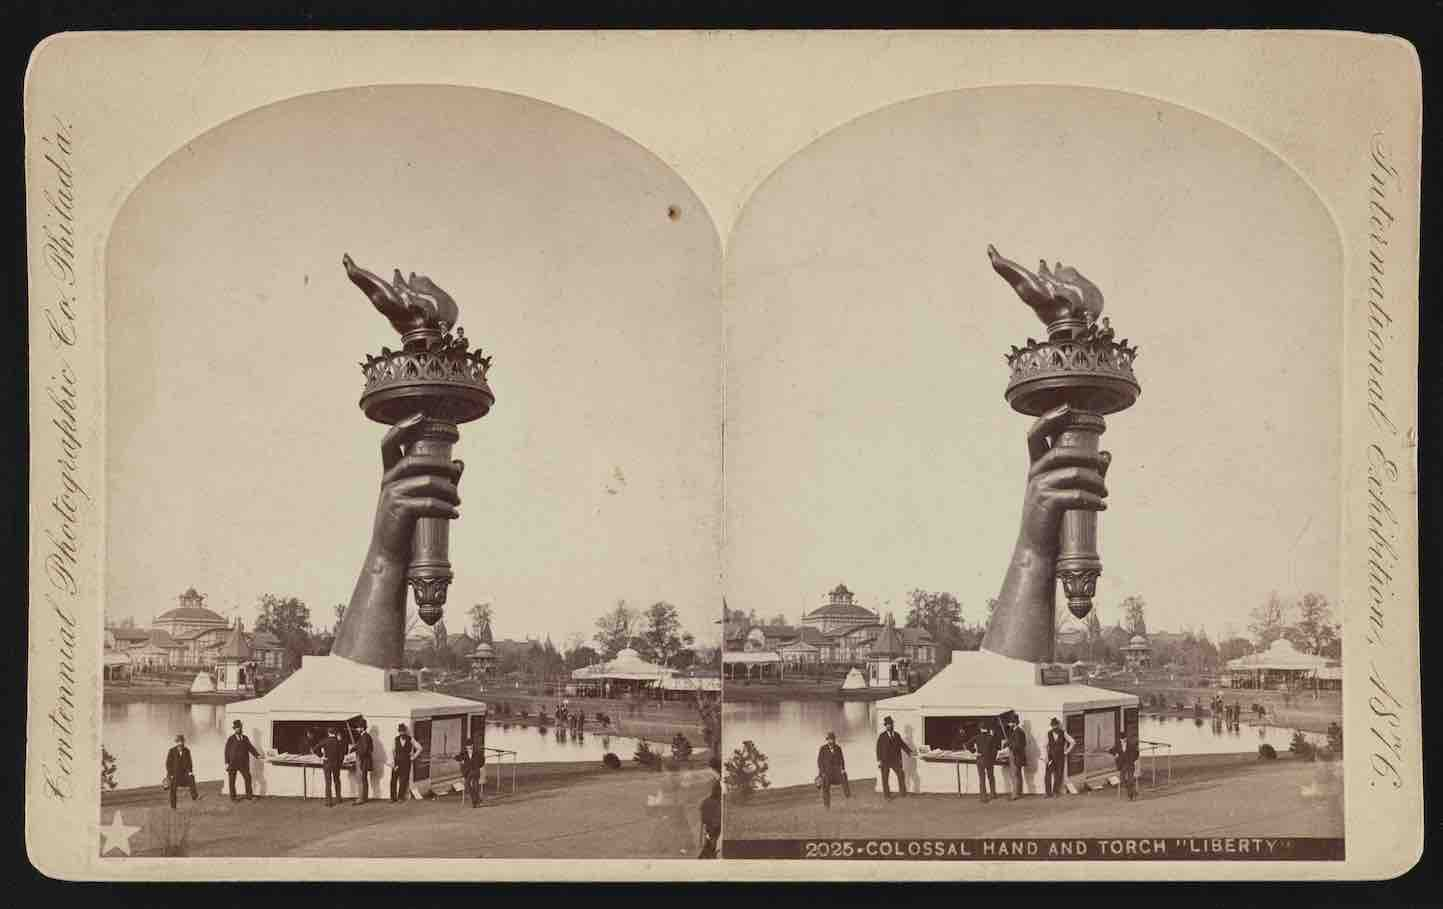 Torch of the Statue of Liberty on display at the Philadelphia Exposition of 1876. Courtesy, U.S. Library of Congress.